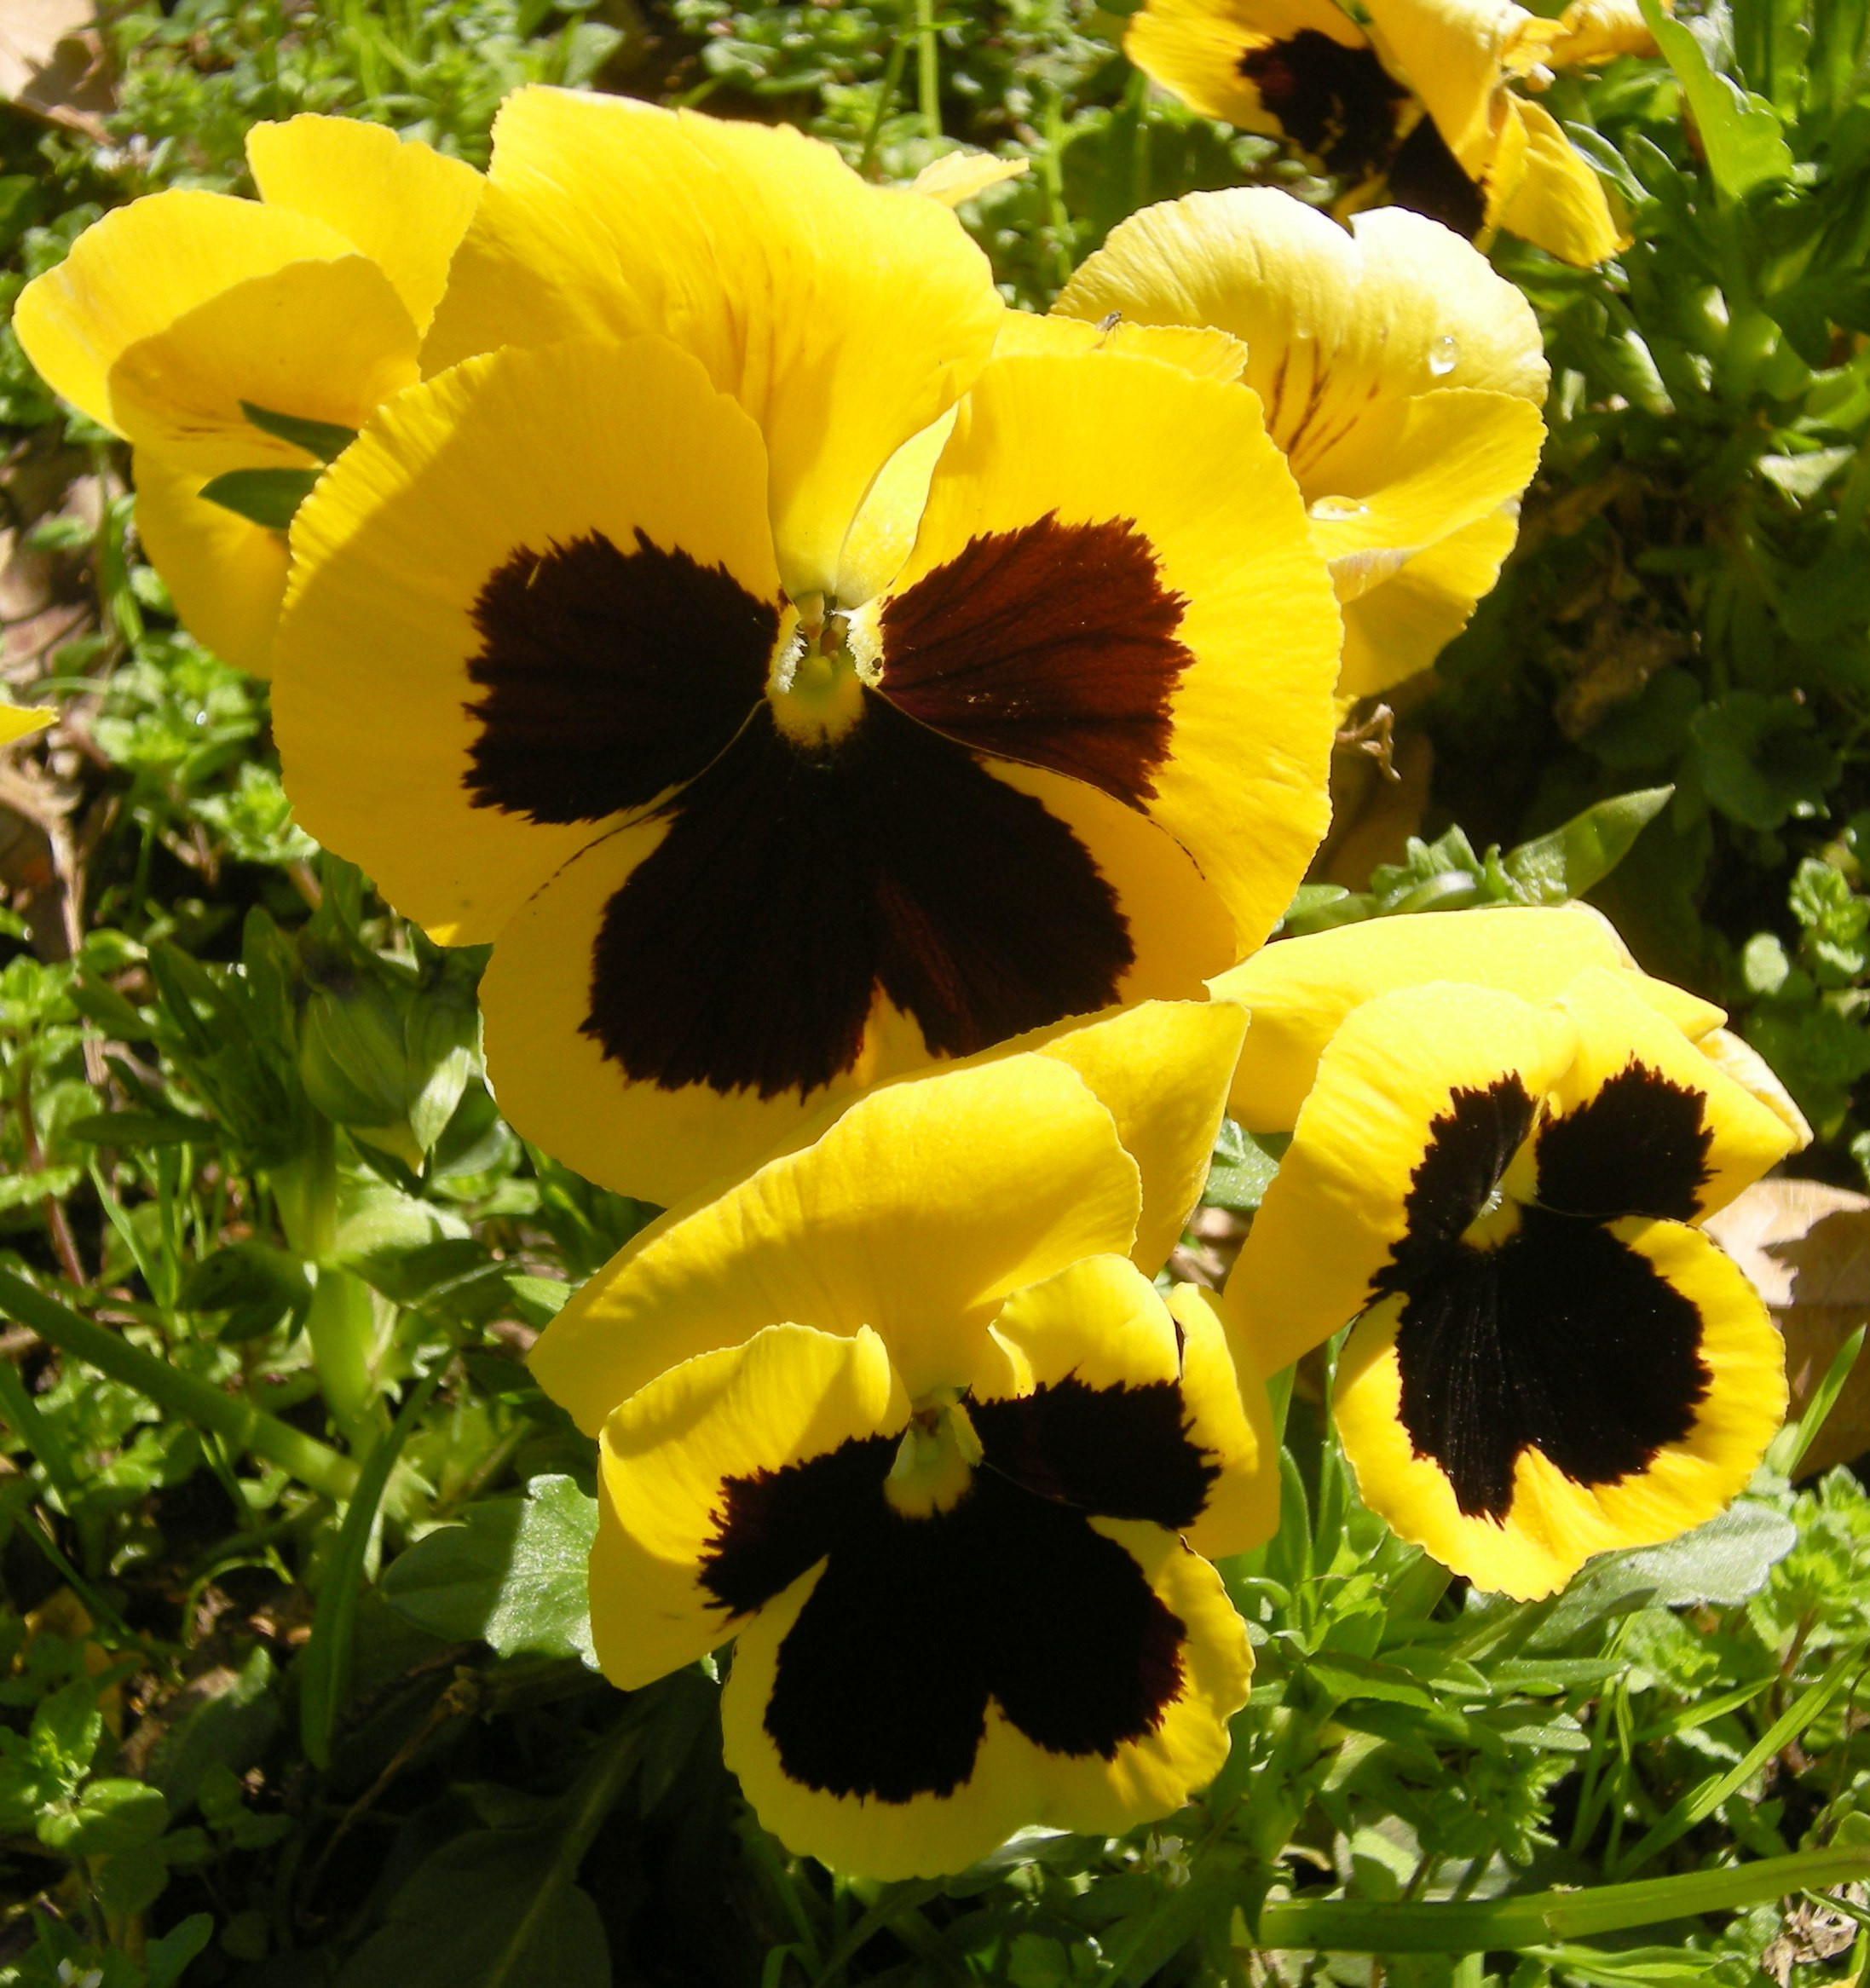 pansy flower ring vase of flowers thetreasuresofnatures blog intended for the pansy must be harvested when blooming in spring the parts used for medicinal purposes are the flowers when harve